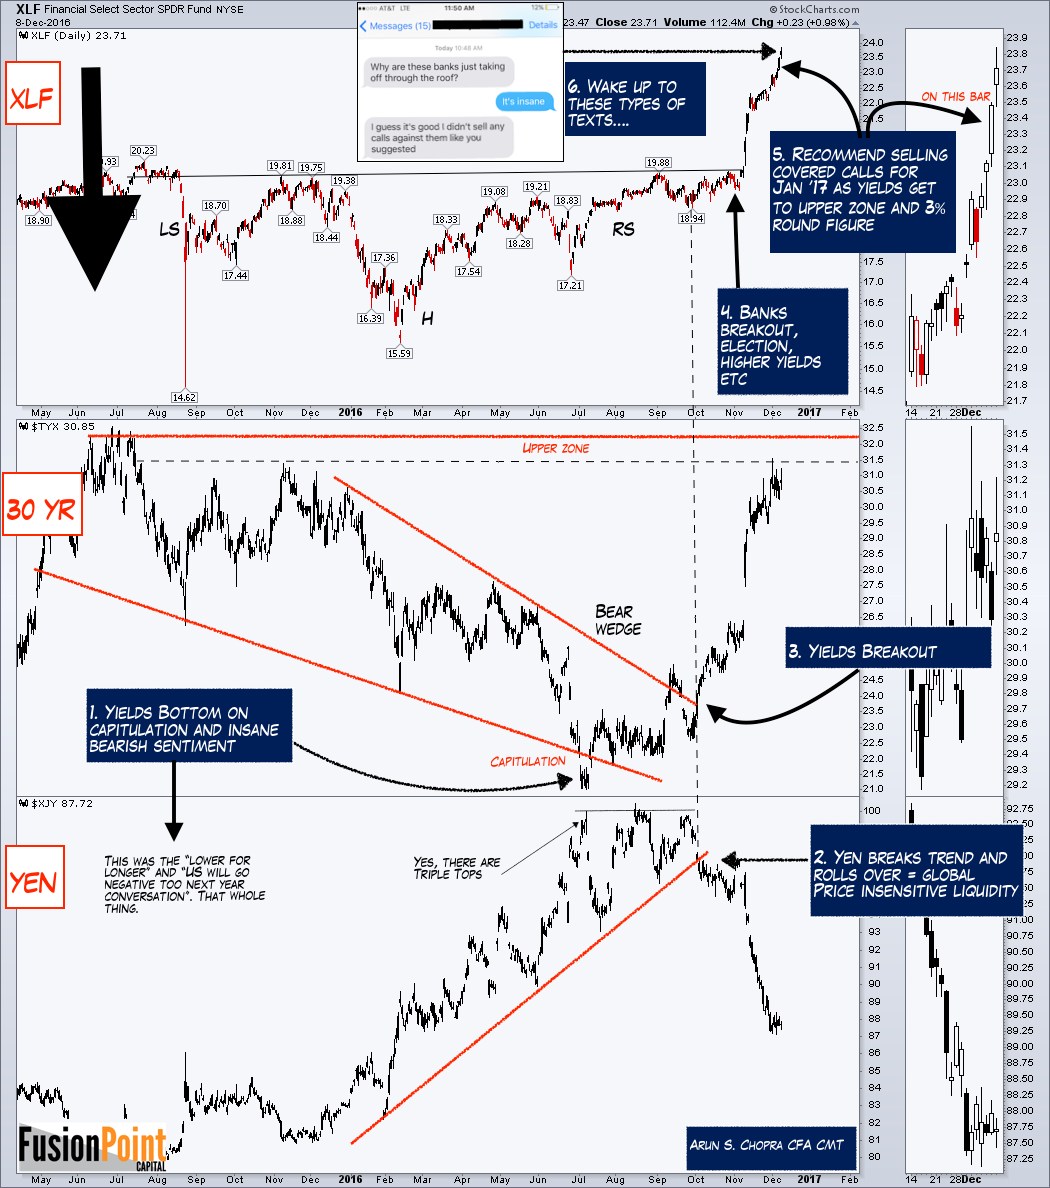 xlf-financials-banks-stock-chart-fear-of-missing-out-rally-december